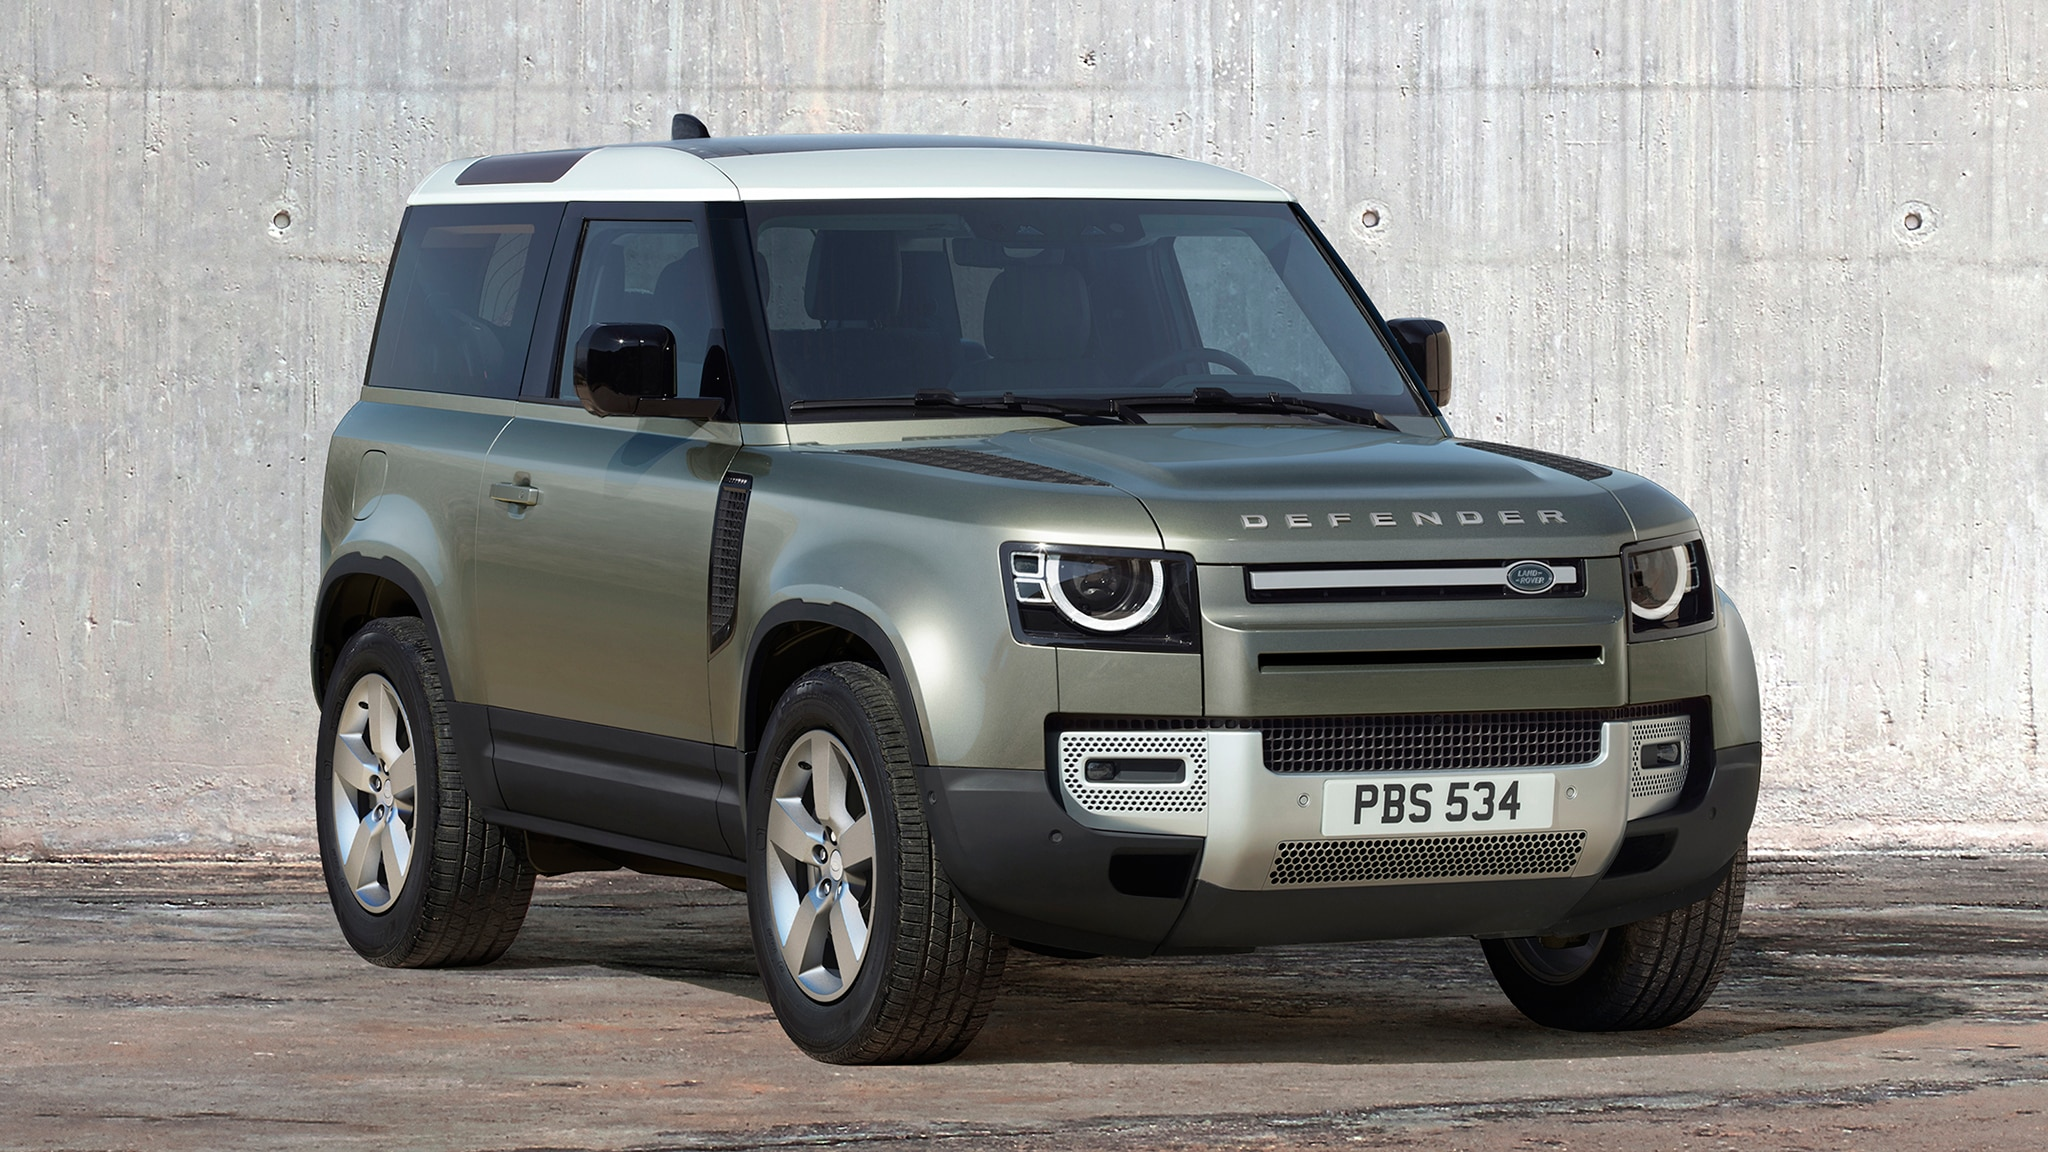 2020 Land Rover Defender: Pictures, Specs, Release Date ...